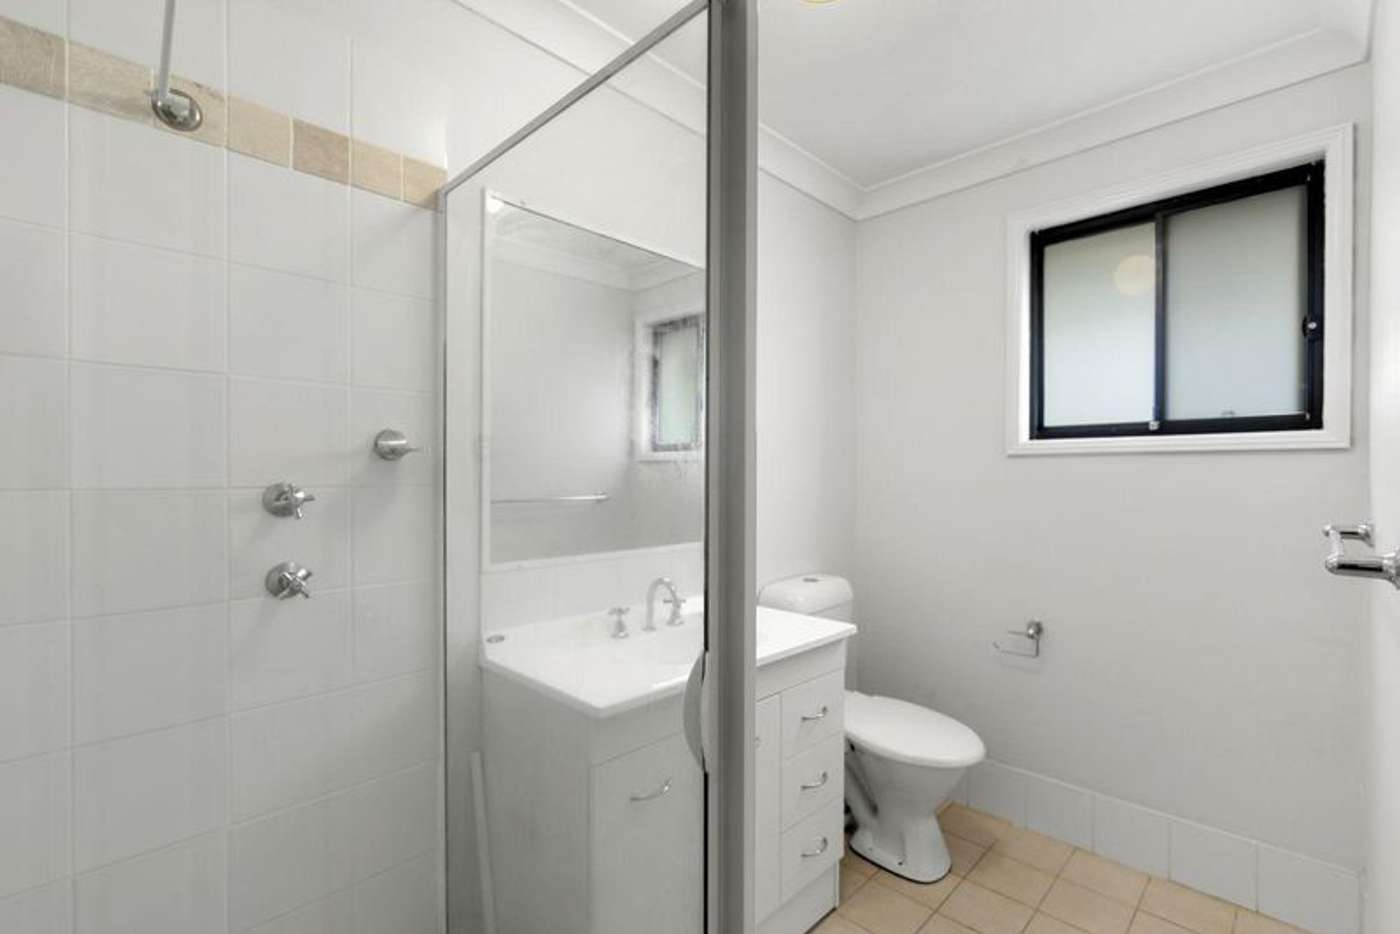 Fifth view of Homely townhouse listing, 4/72 Dwyer Street, North Gosford NSW 2250